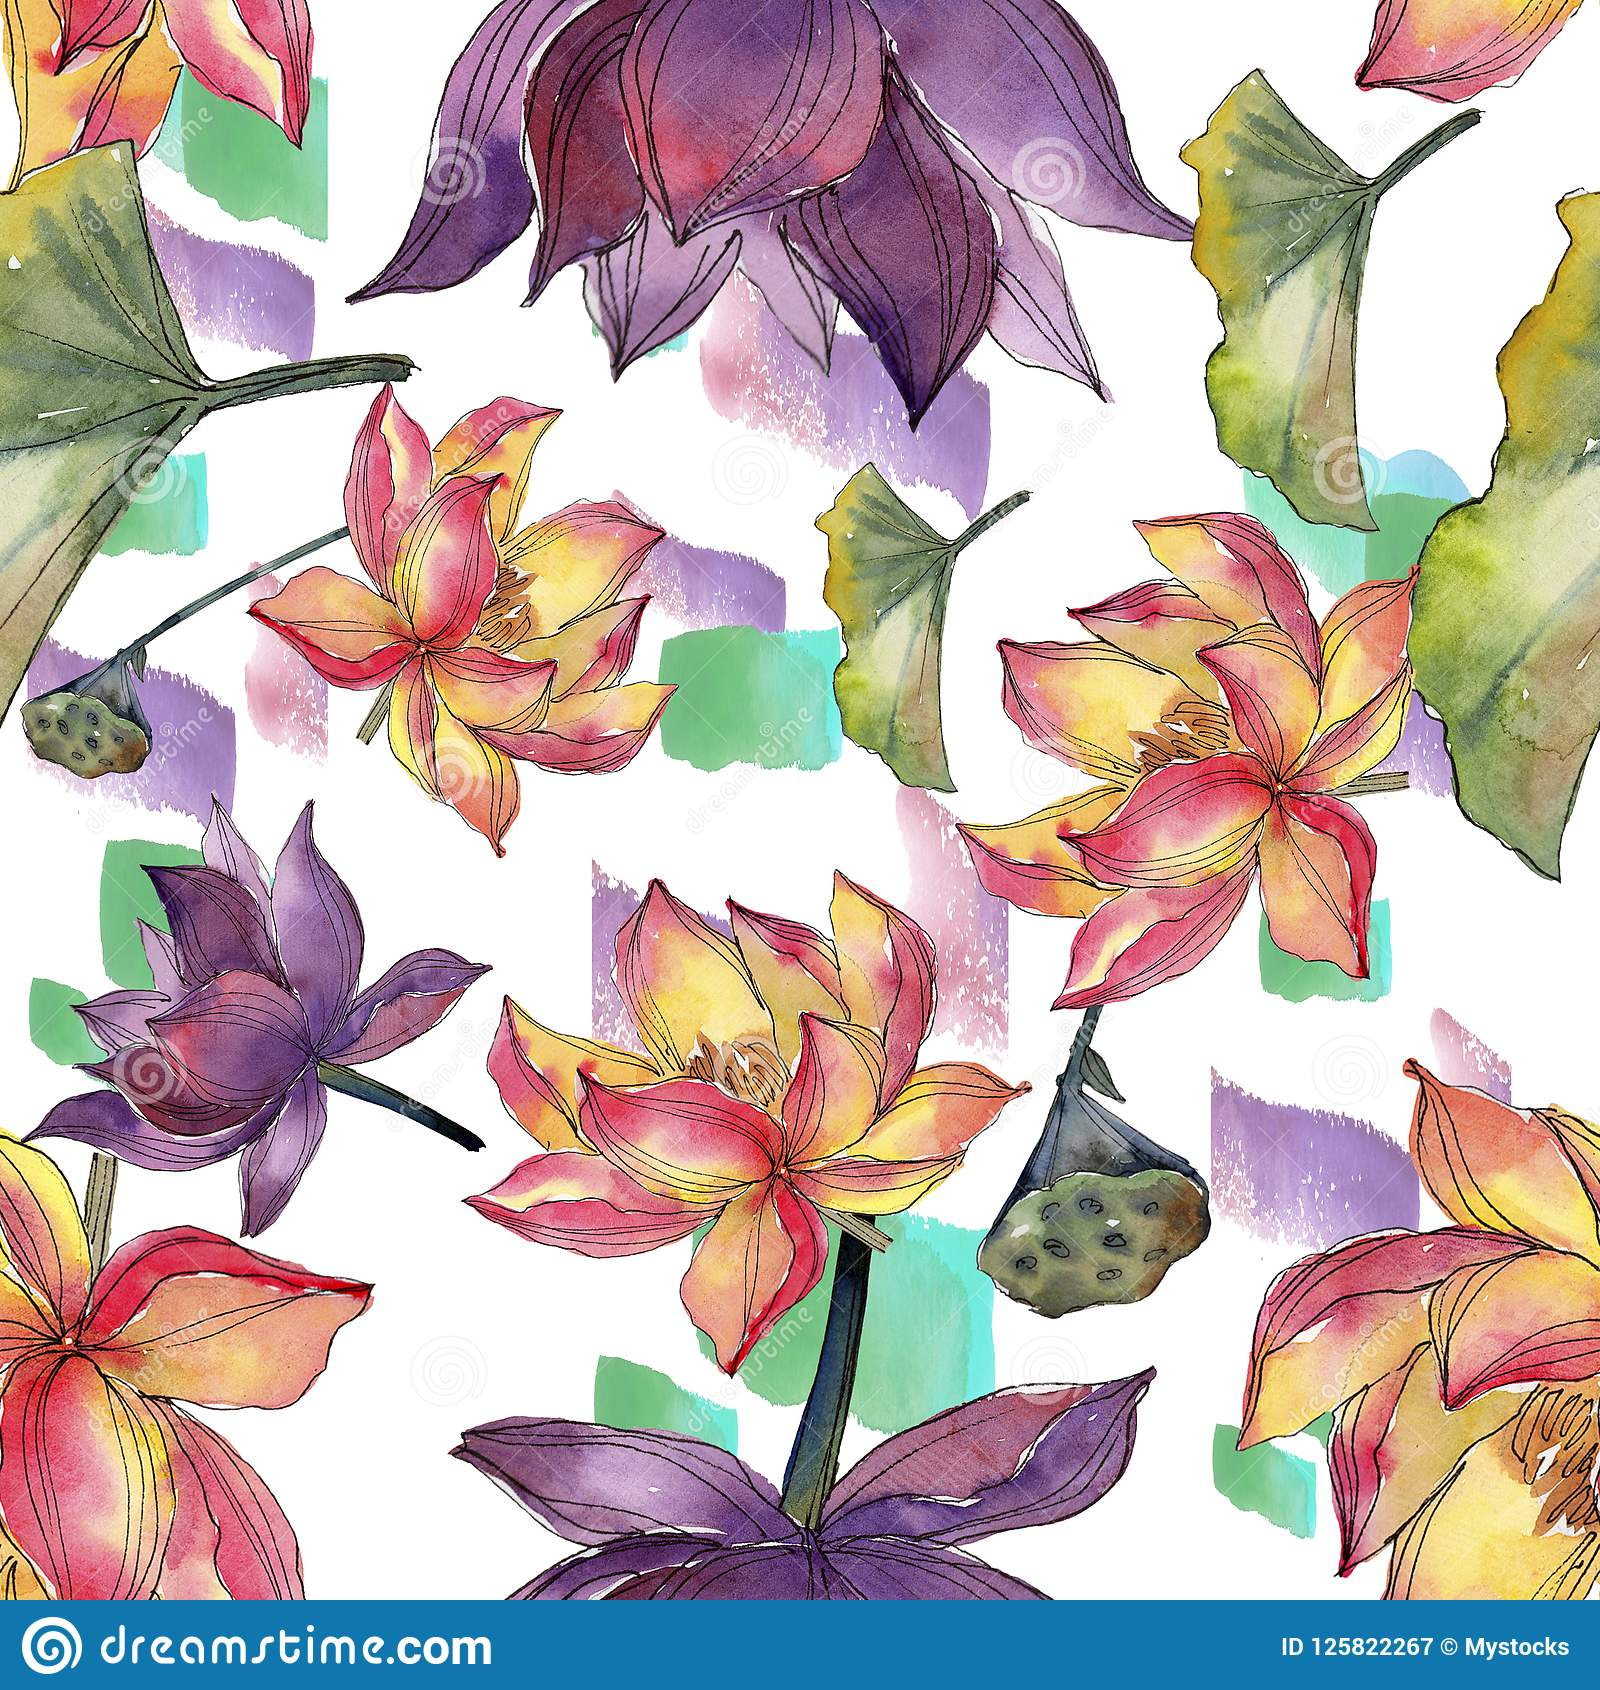 Watercolor colorful lotus flower floral botanical flower seamless download watercolor colorful lotus flower floral botanical flower seamless background pattern stock illustration mightylinksfo